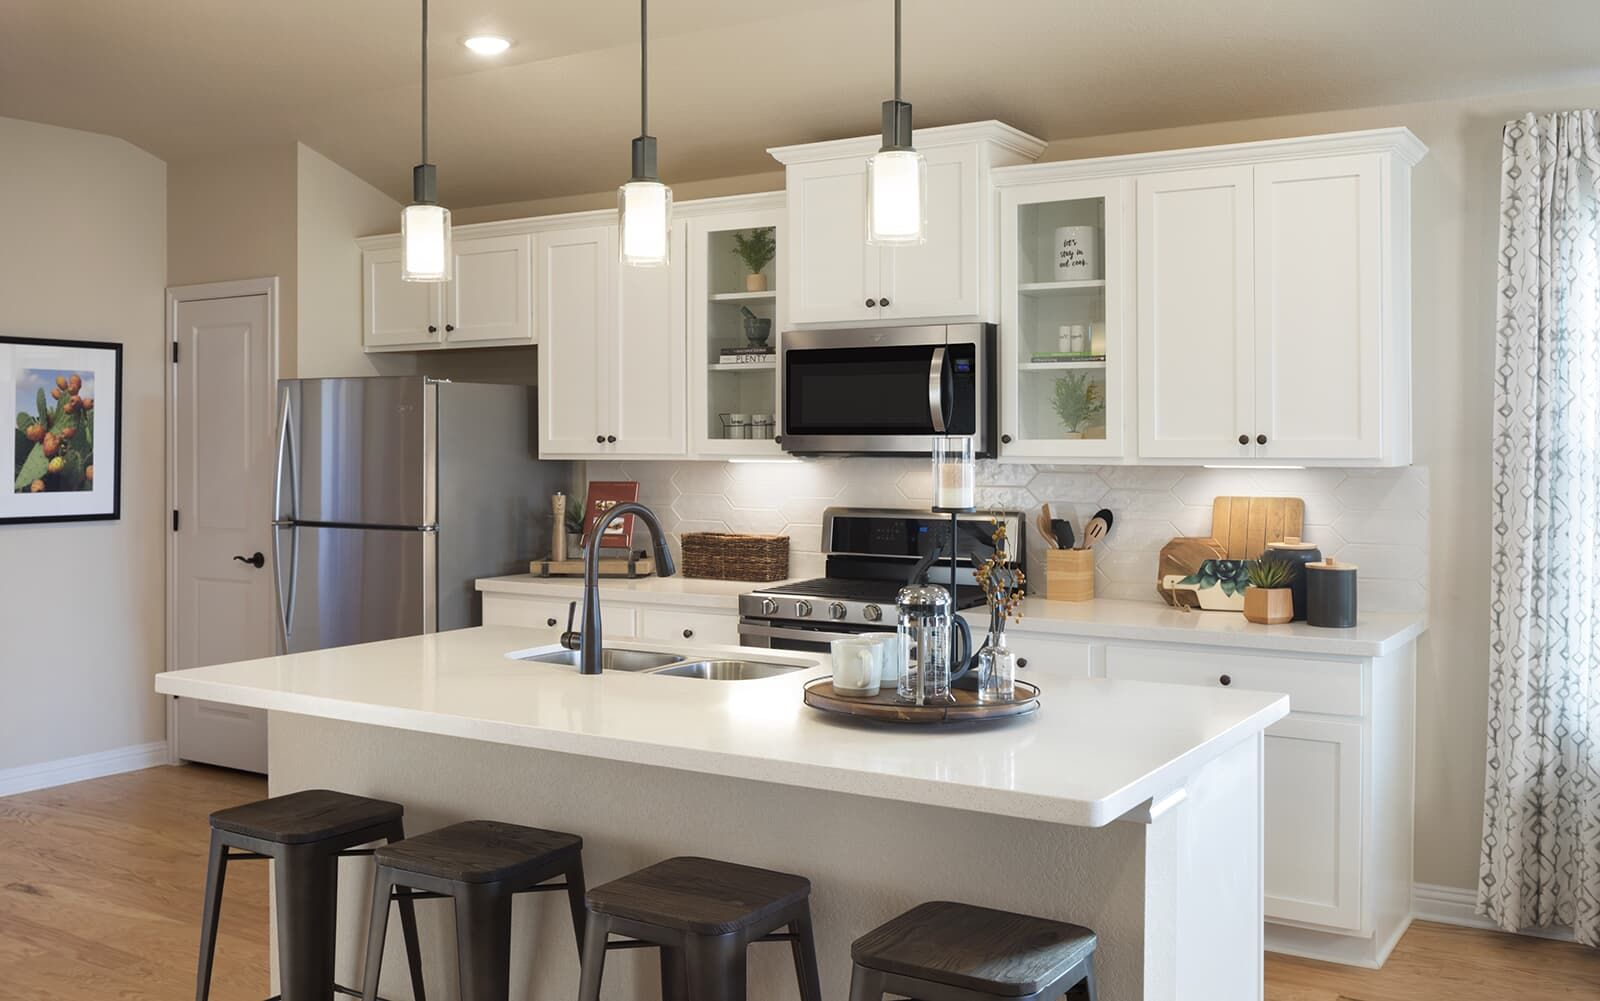 Kitchen featured in the Oakwood By Brookfield Residential in Austin, TX